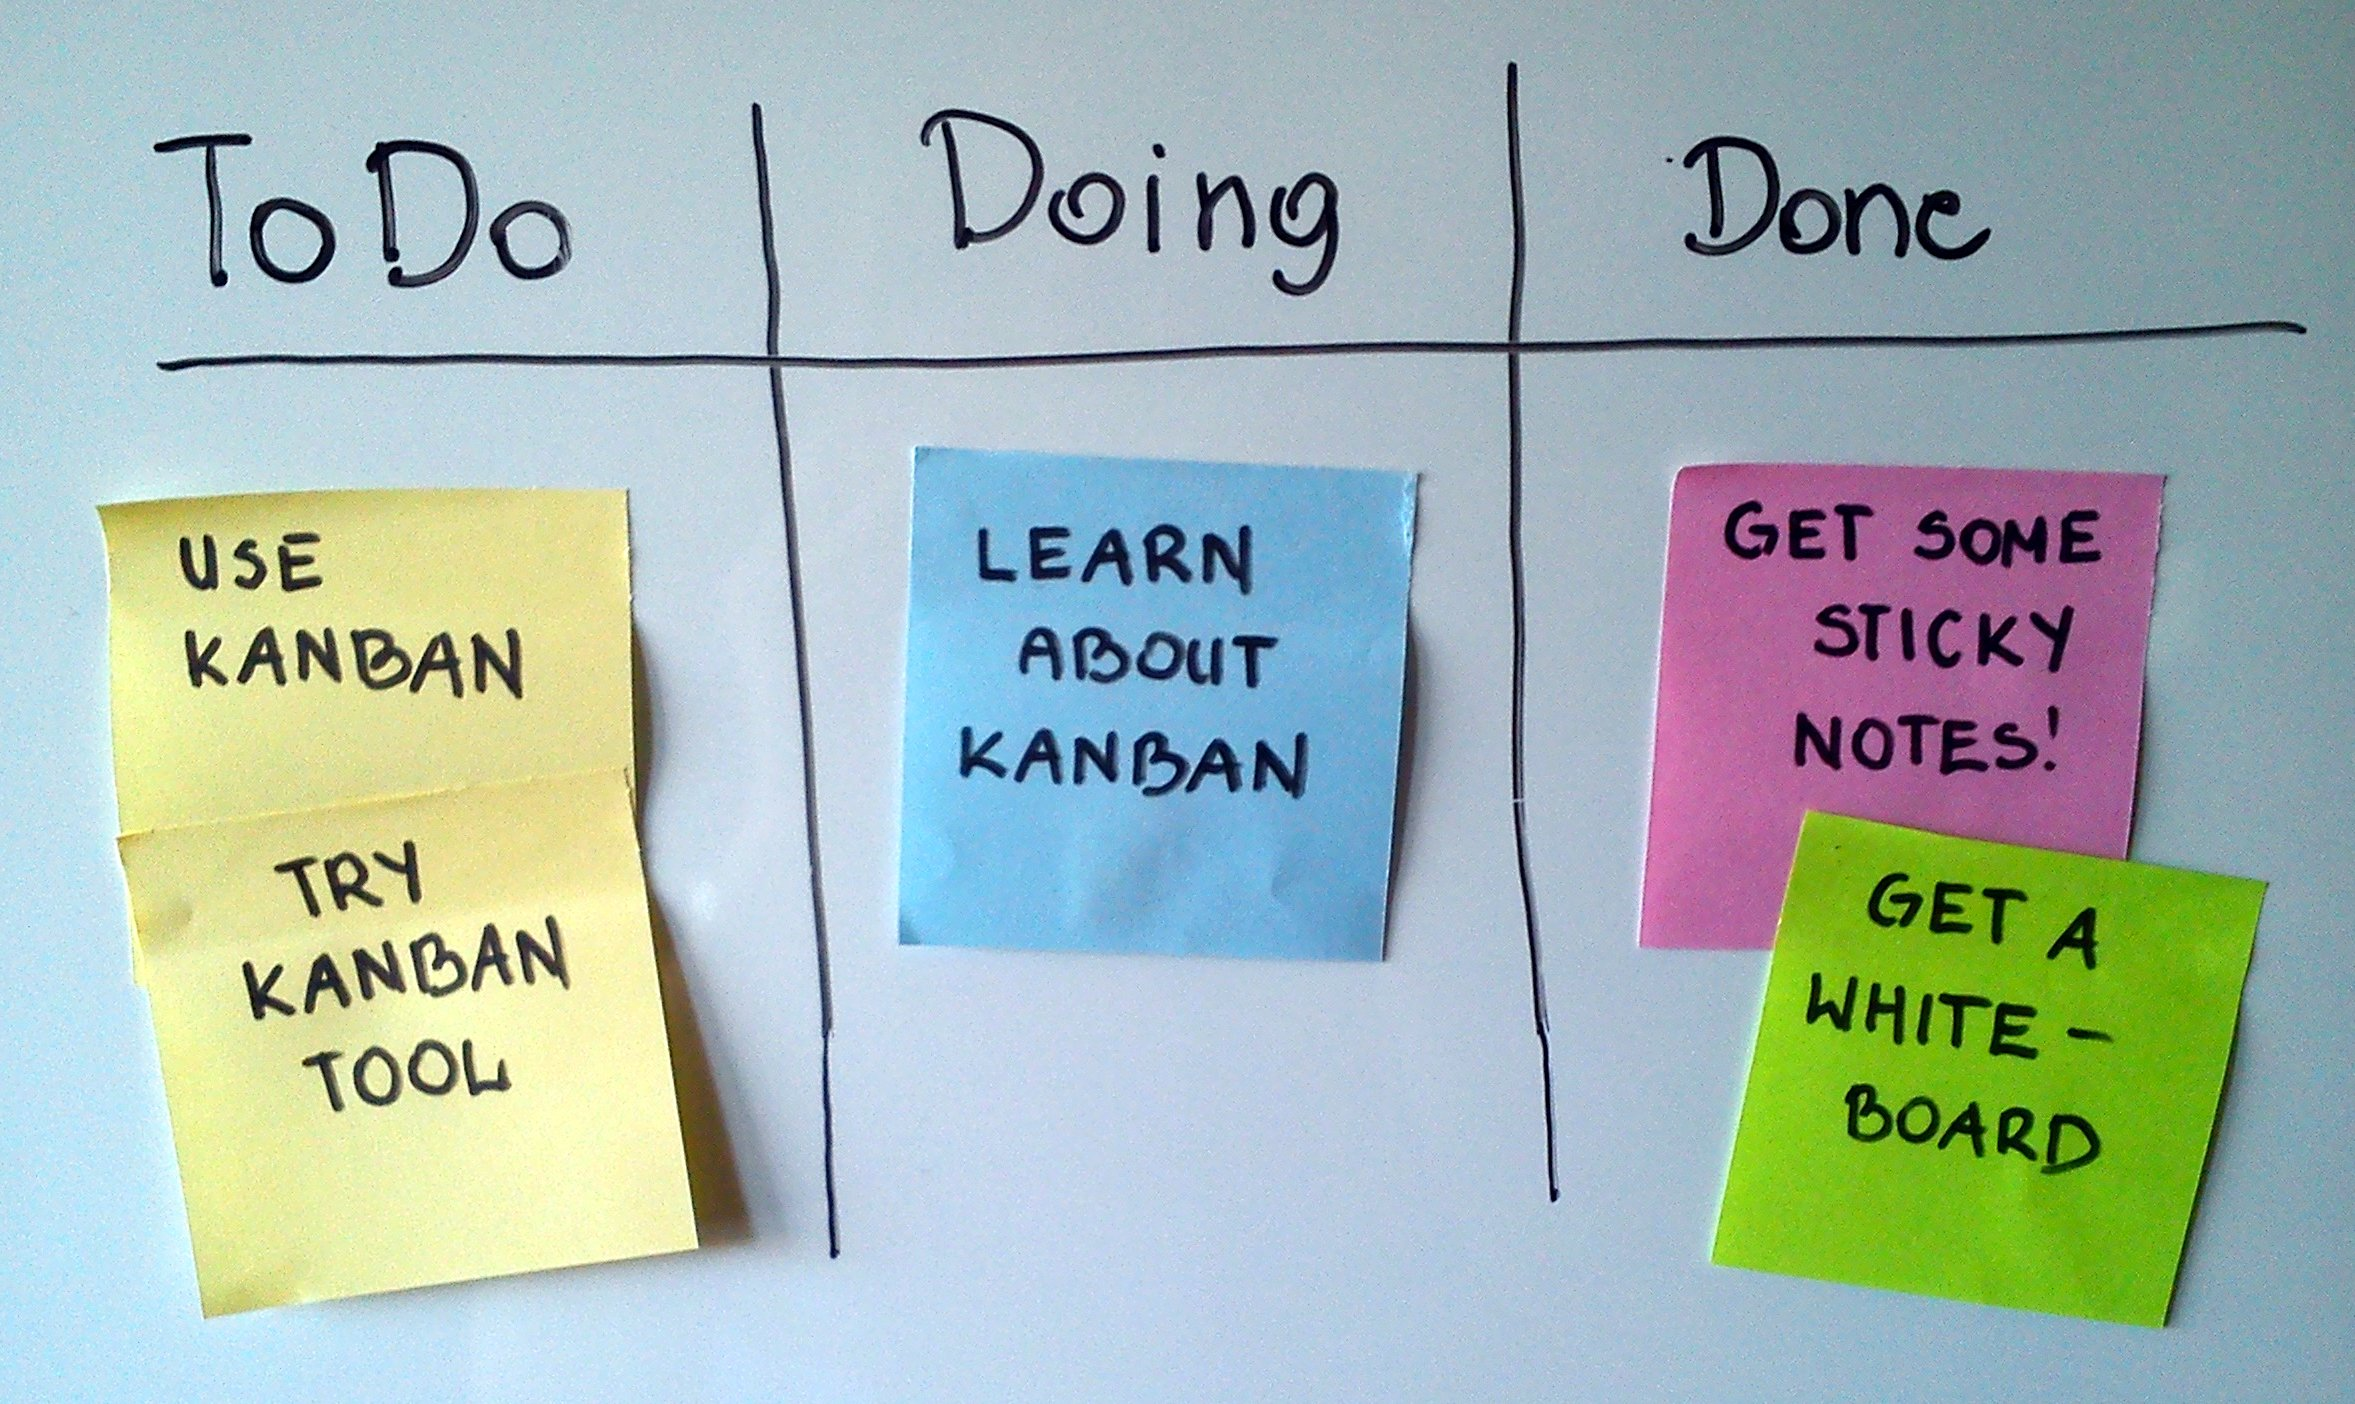 A simple Kanban board, illustrated. Source: Wikipedia